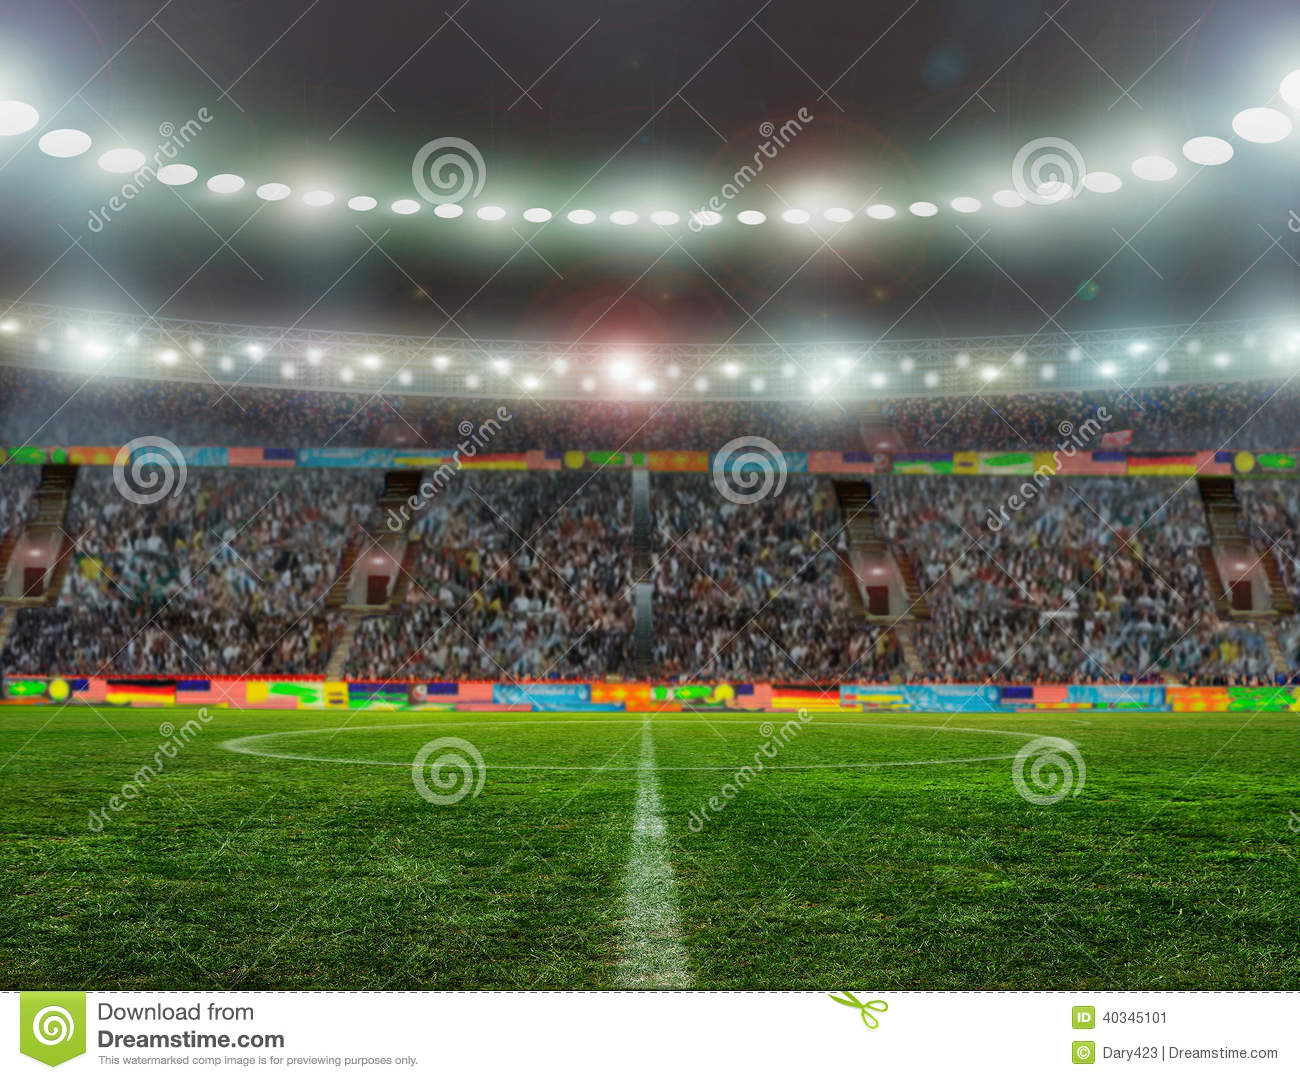 On The Stadium Abstract Football Or Soccer Backgrounds: Soccer Bal.football, Stock Photo